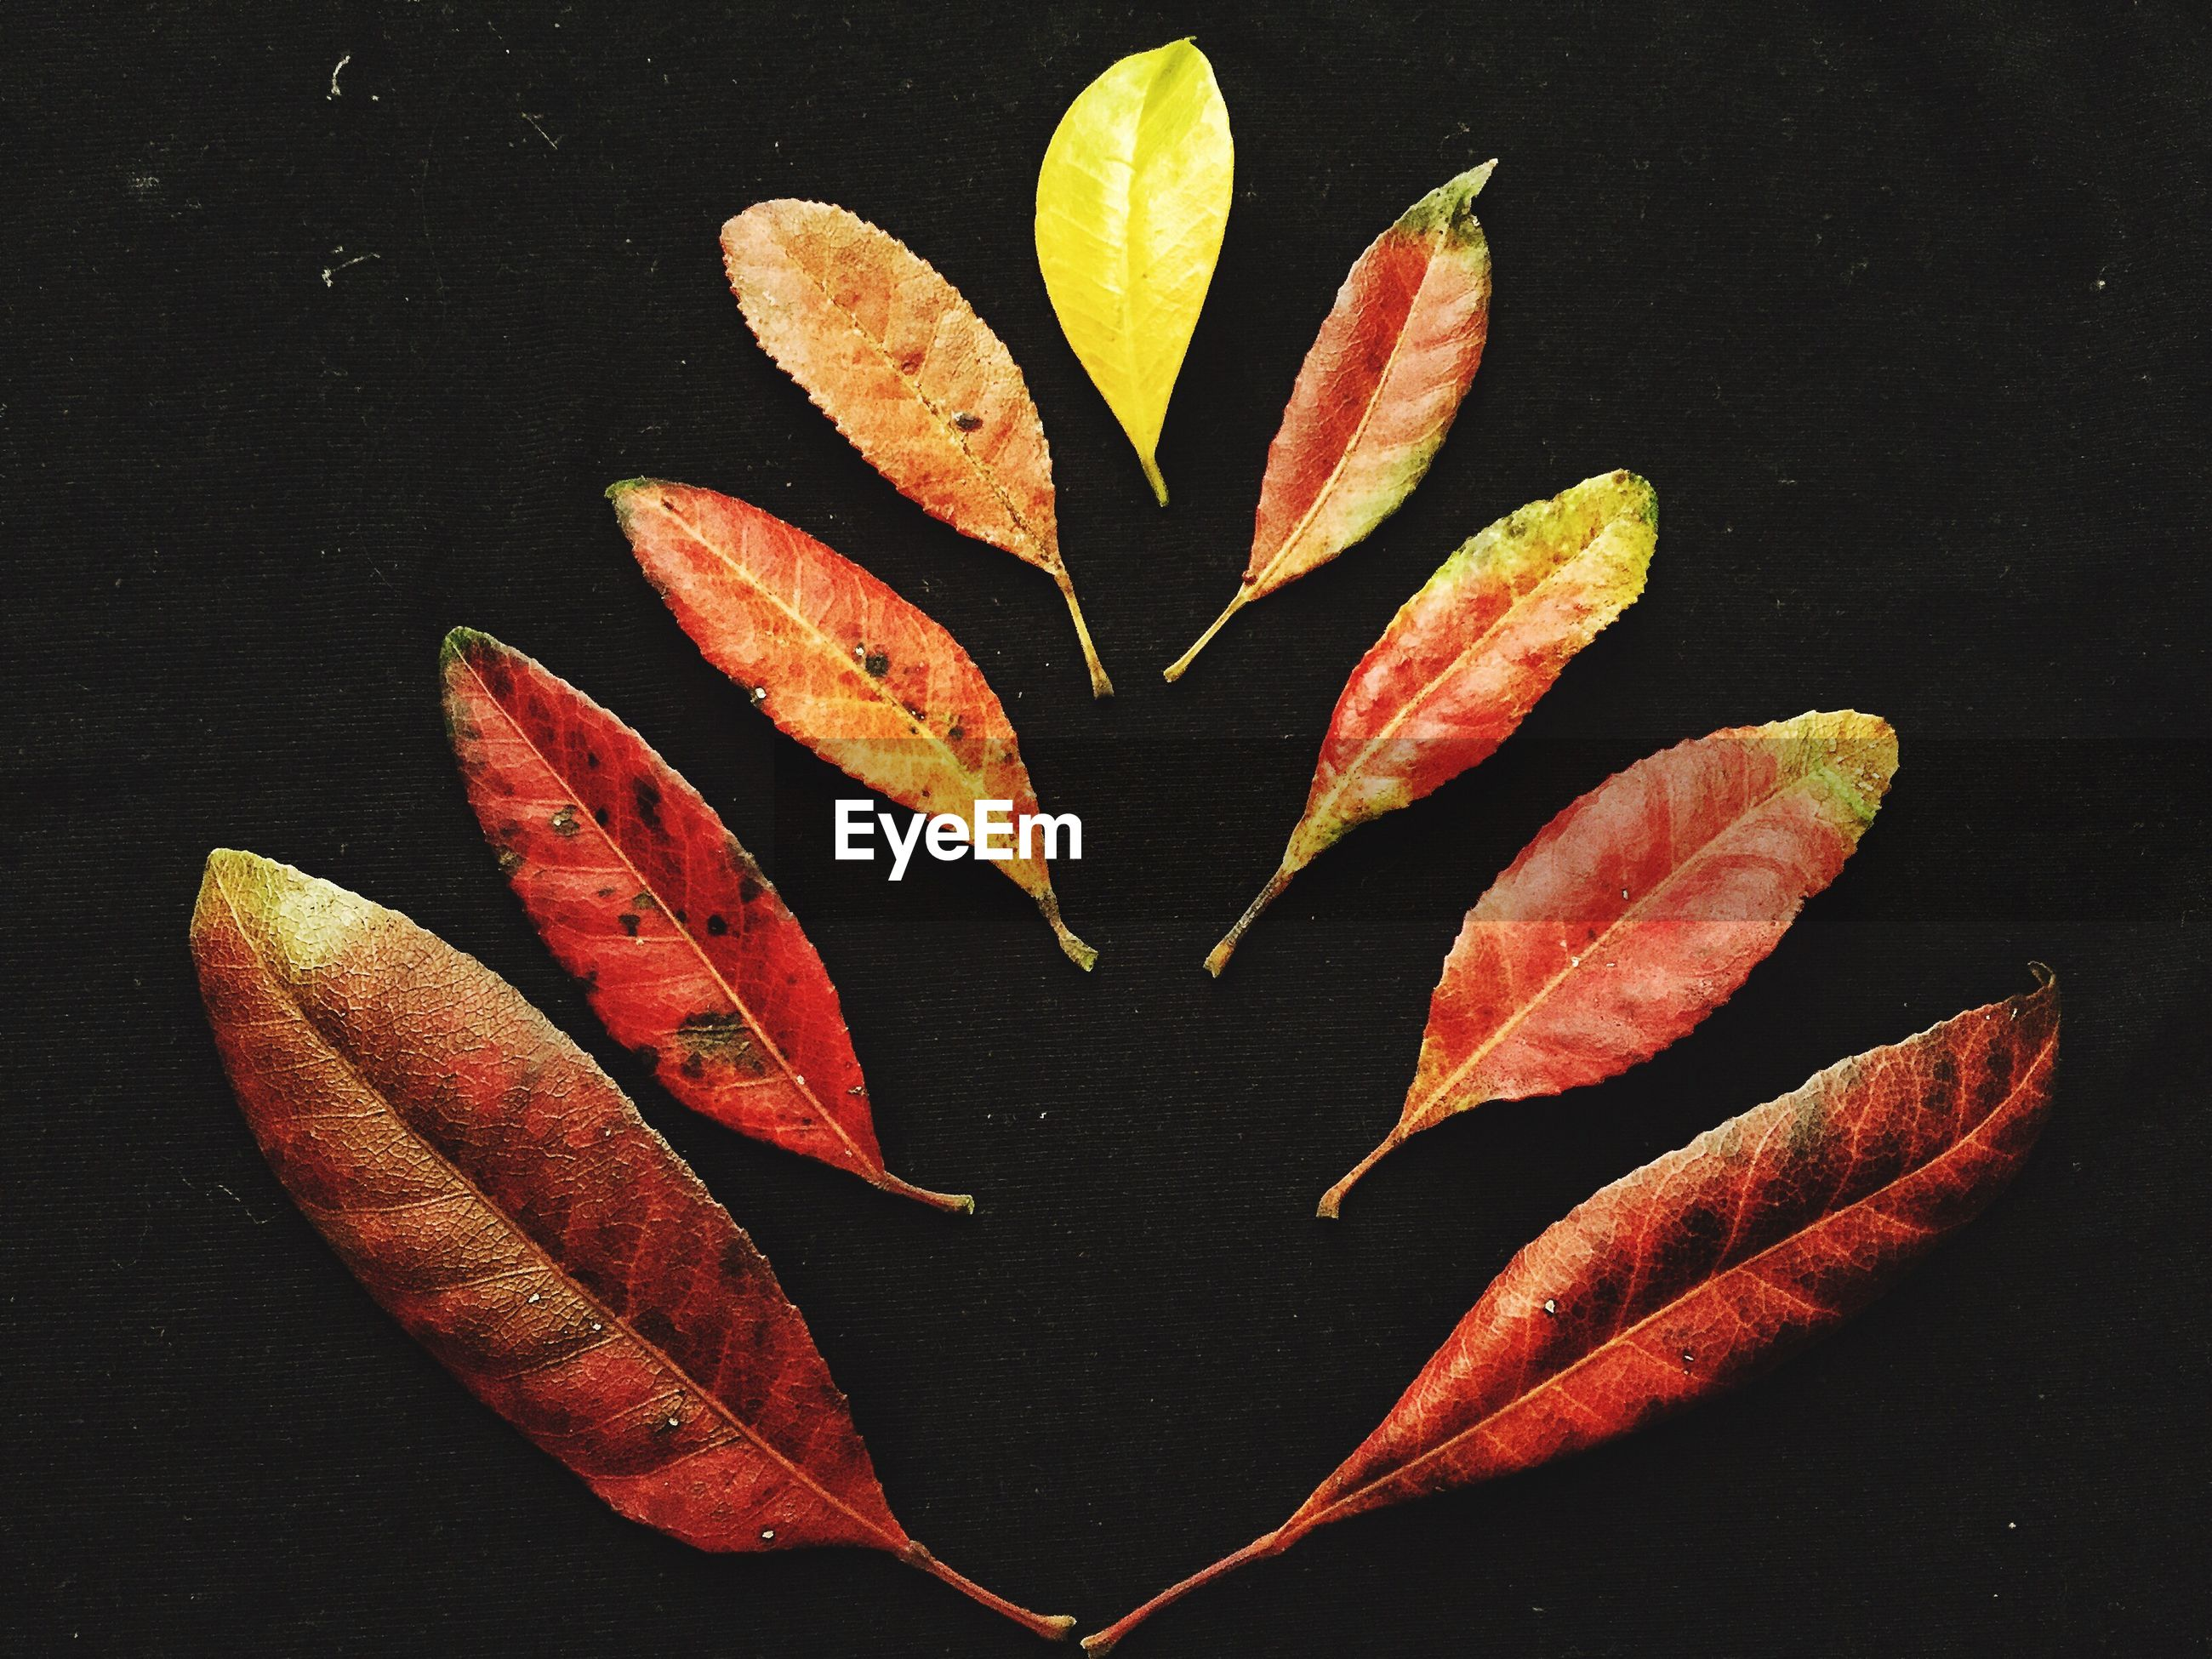 Close-up of autumn leaves against black background